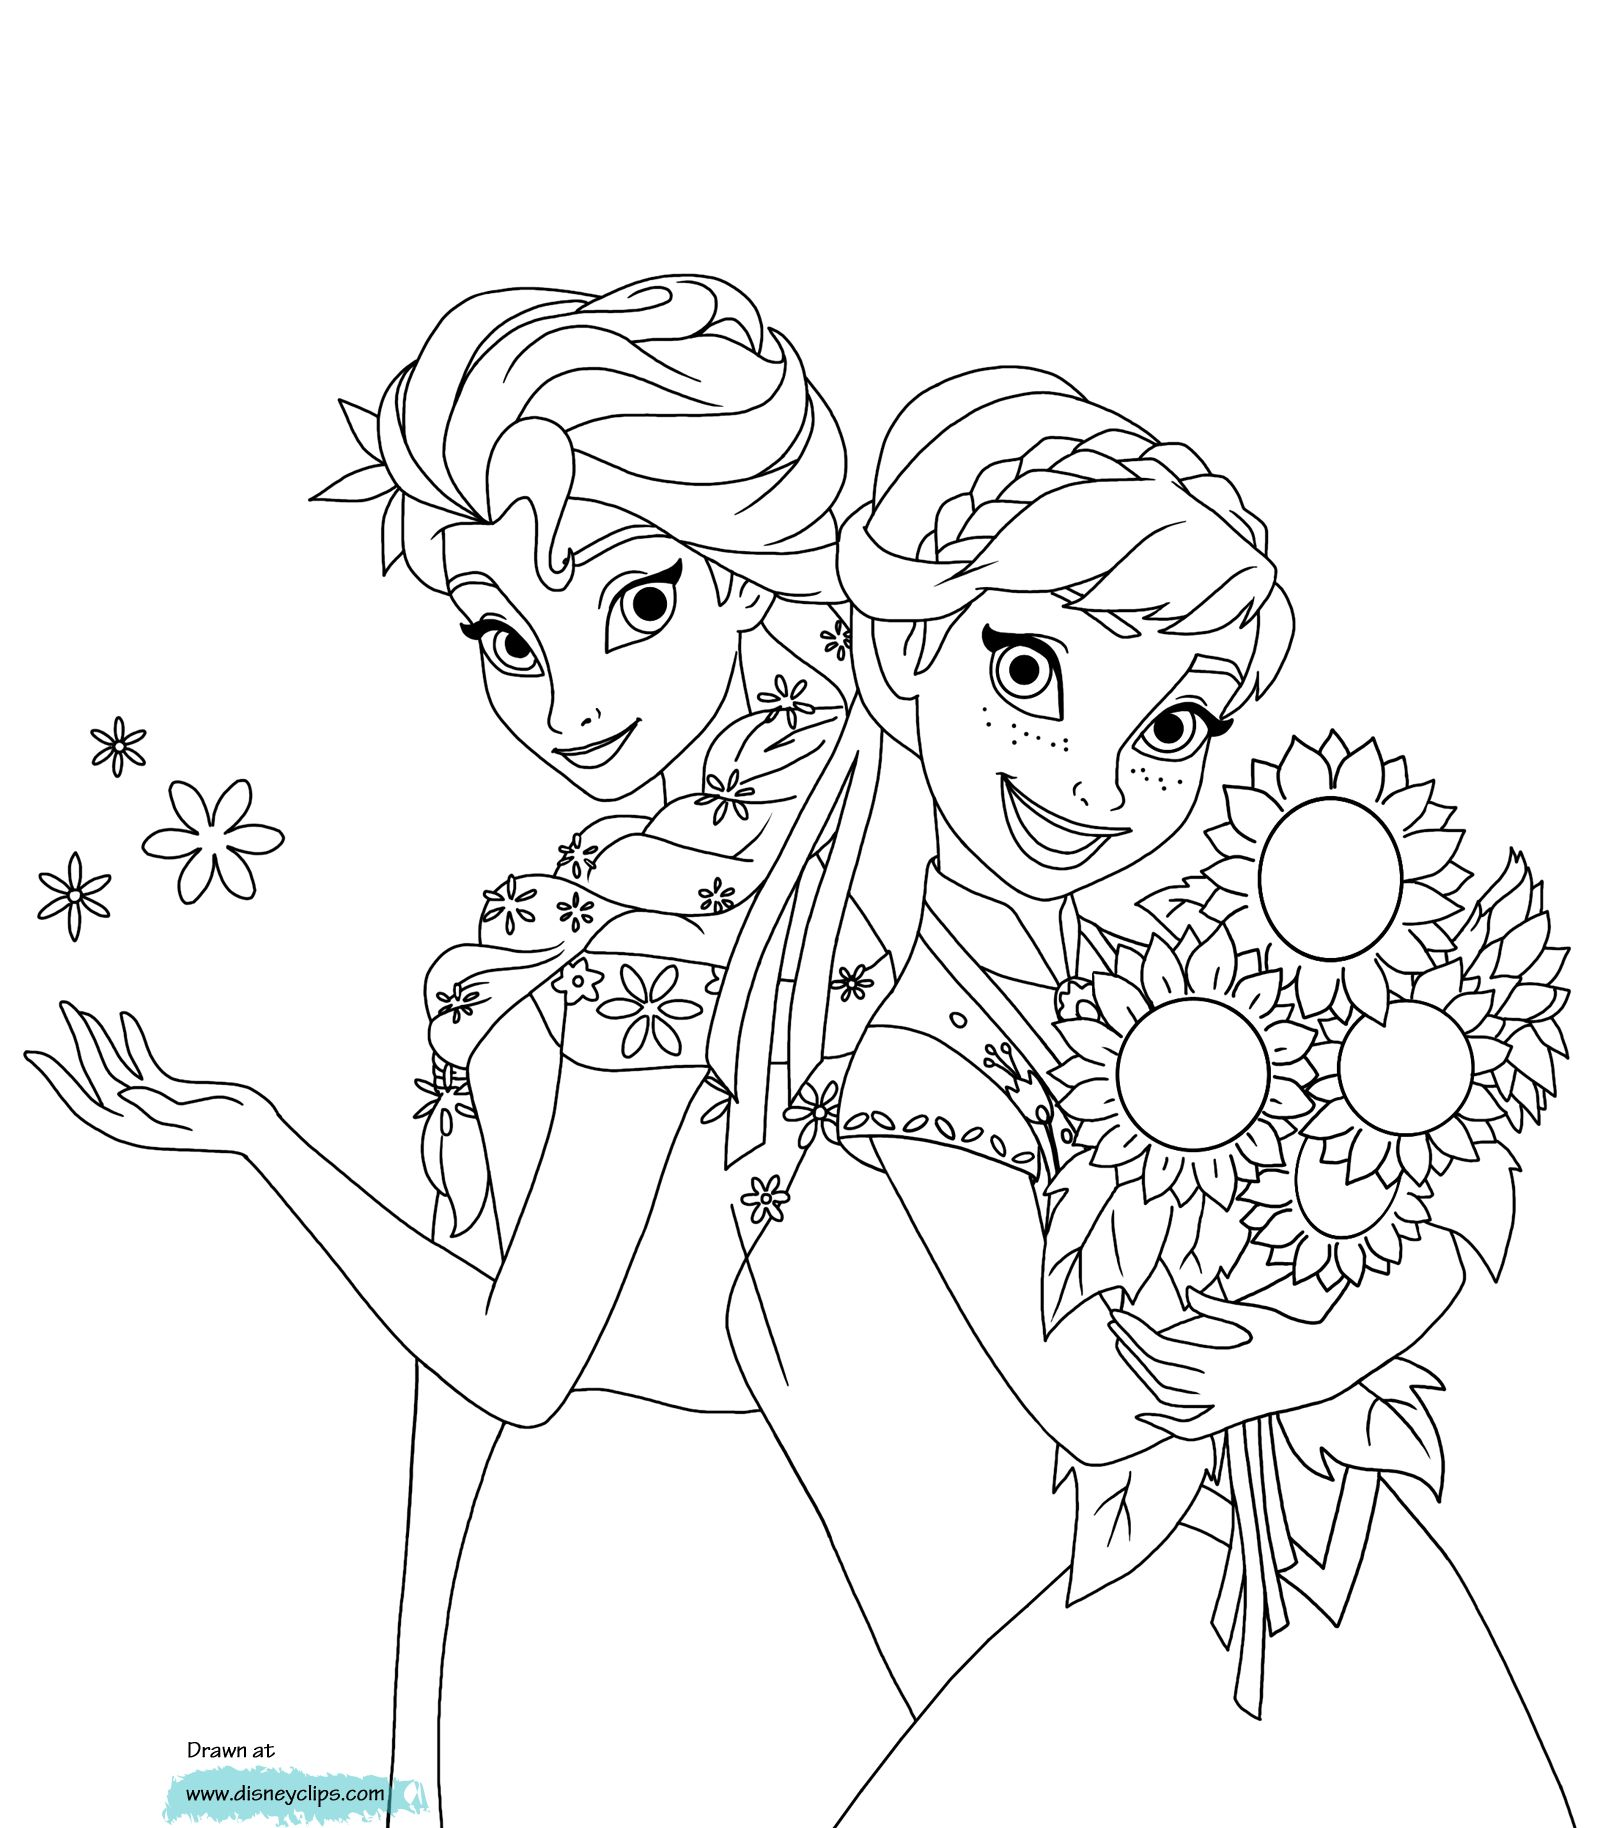 Pin By Elizabeth Climis On Coloring Pages Pinterest Frozen